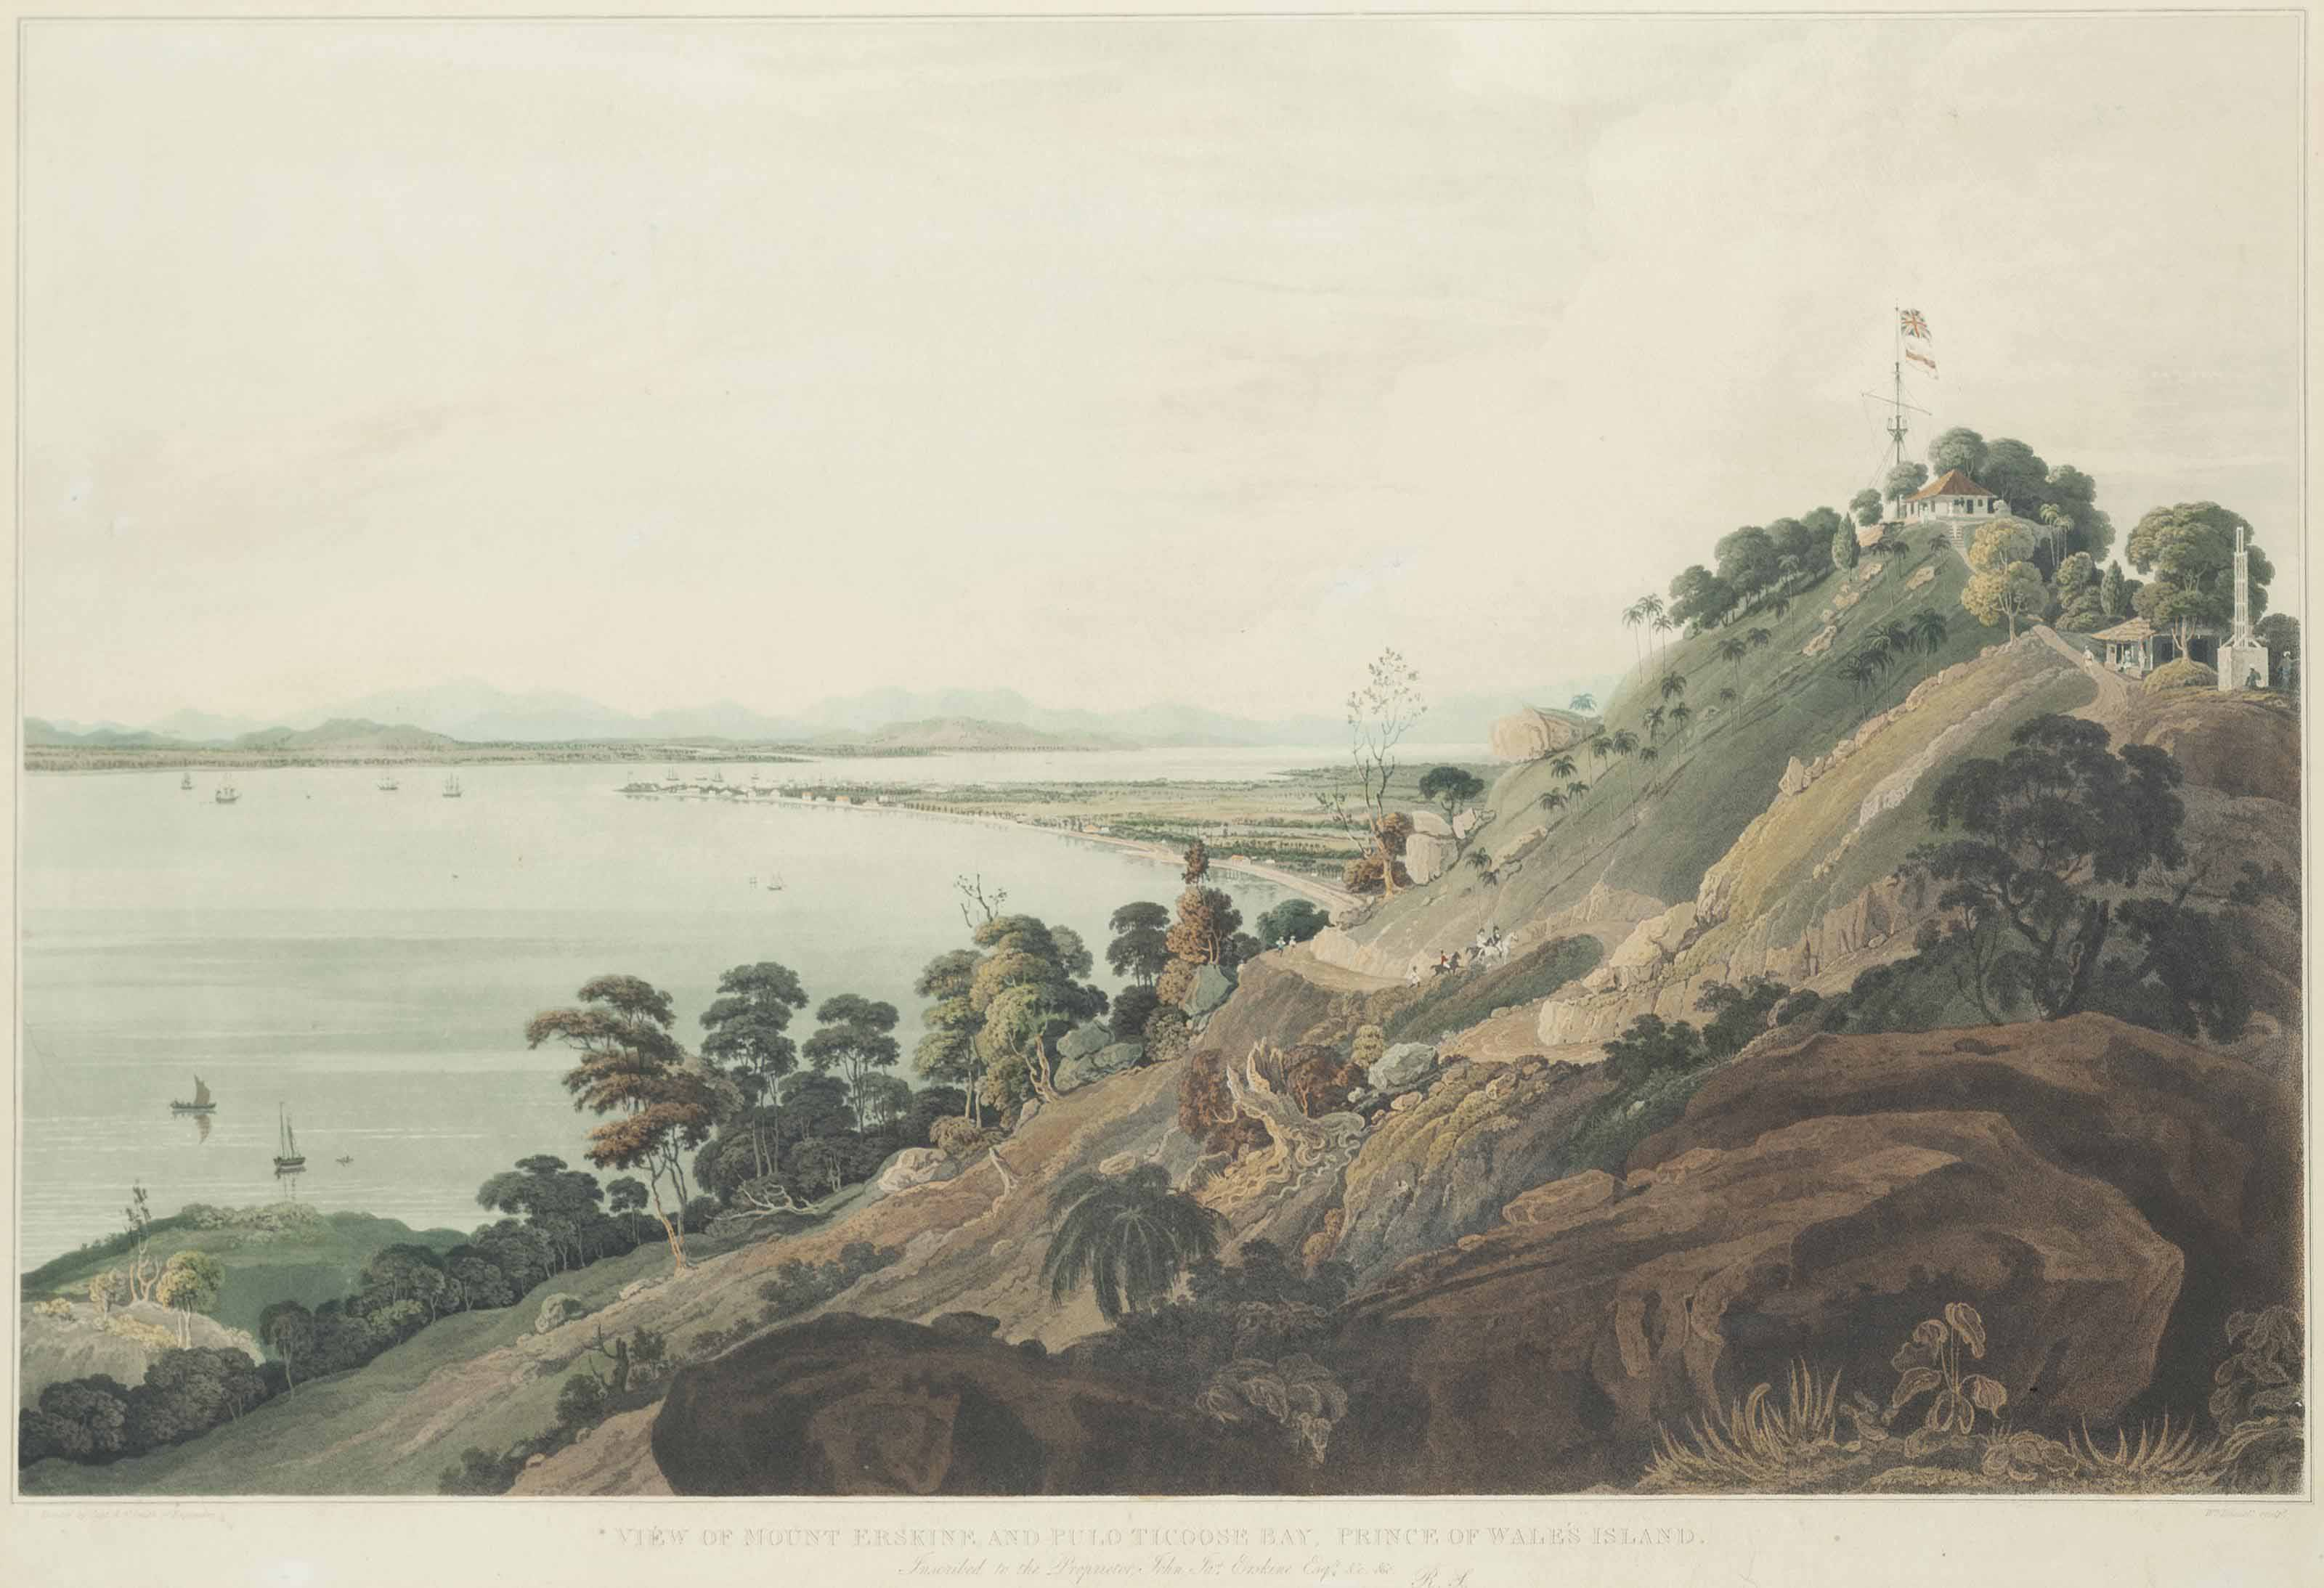 View from Halliburton's Hill, Prince of Wale's Island; View from the Convalescent Bungalow, Prince of Wale's Island; View of Mount Erskine and Pulo Ticoose Bay, Prince of Wale's Island